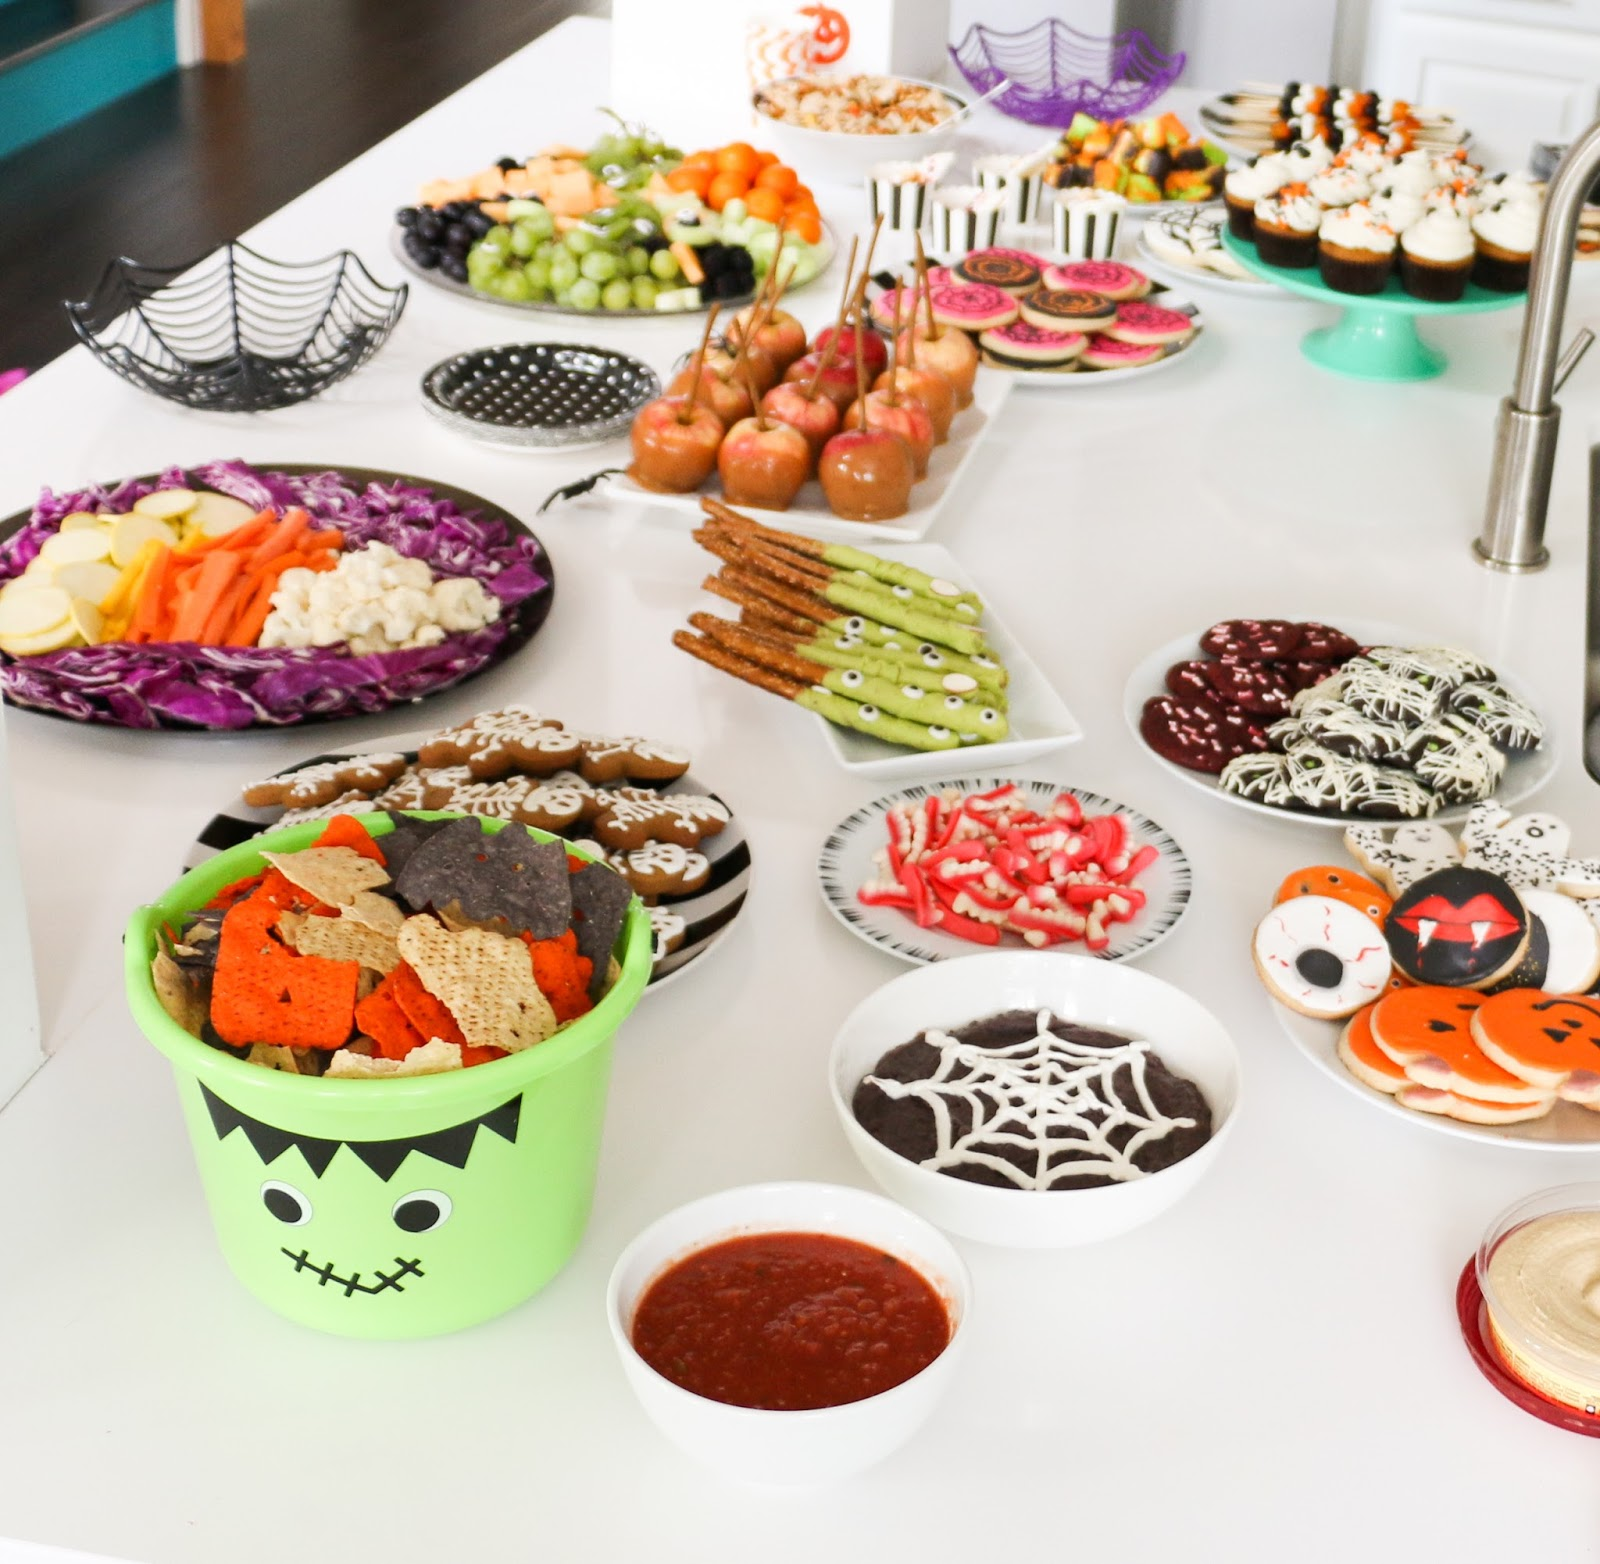 fruit and veggie trays halloween antipasto skewers chips salsa guacamole and black bean dip with piped sour cream web